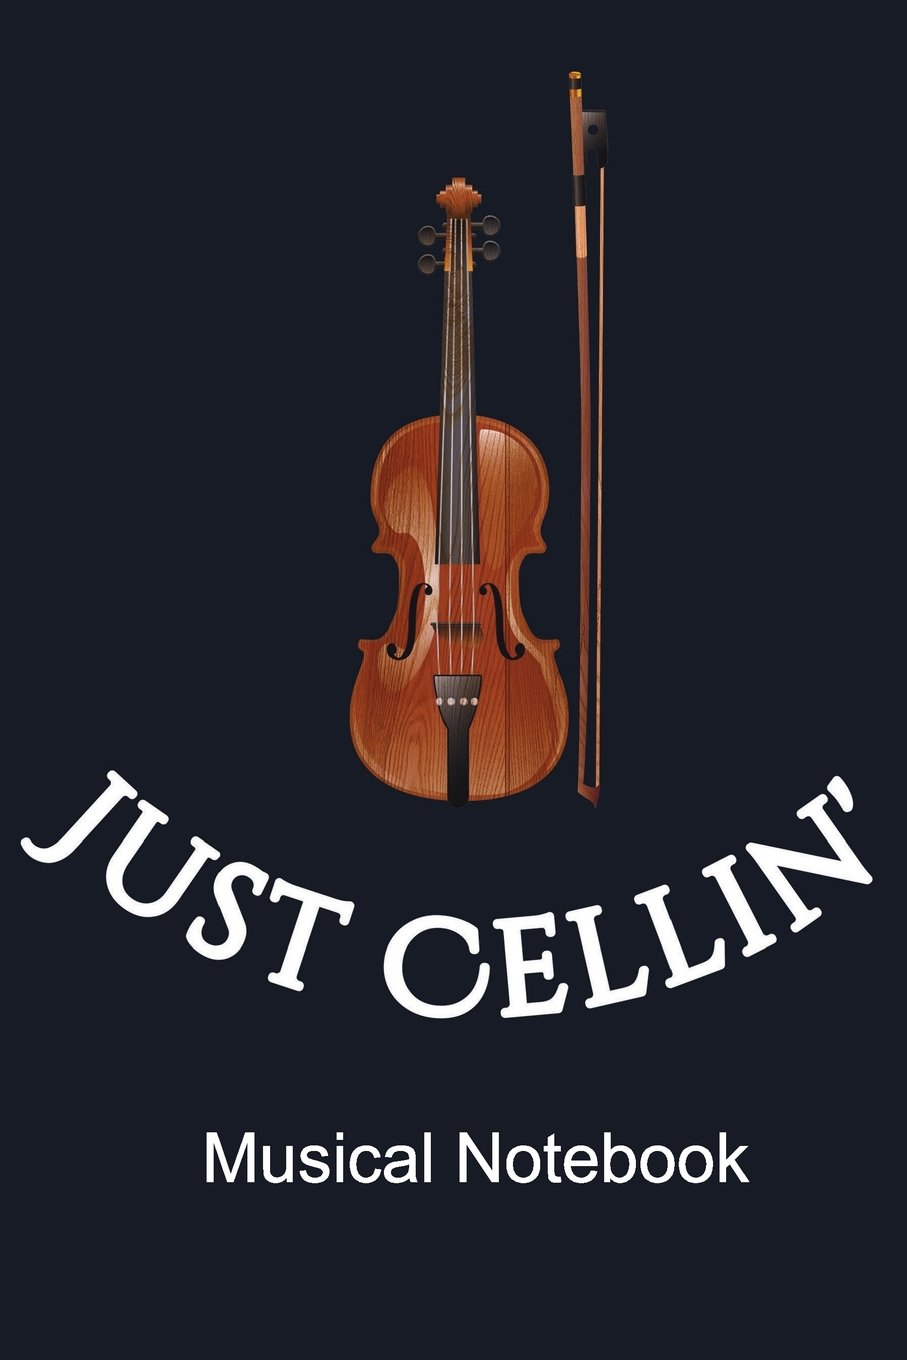 """Just Cellin' Musical Notebook: Journal Notebook for Cello Music Lessons. 6"""" X 9"""" Lined Journal. 120 Pages with Date Header. pdf"""